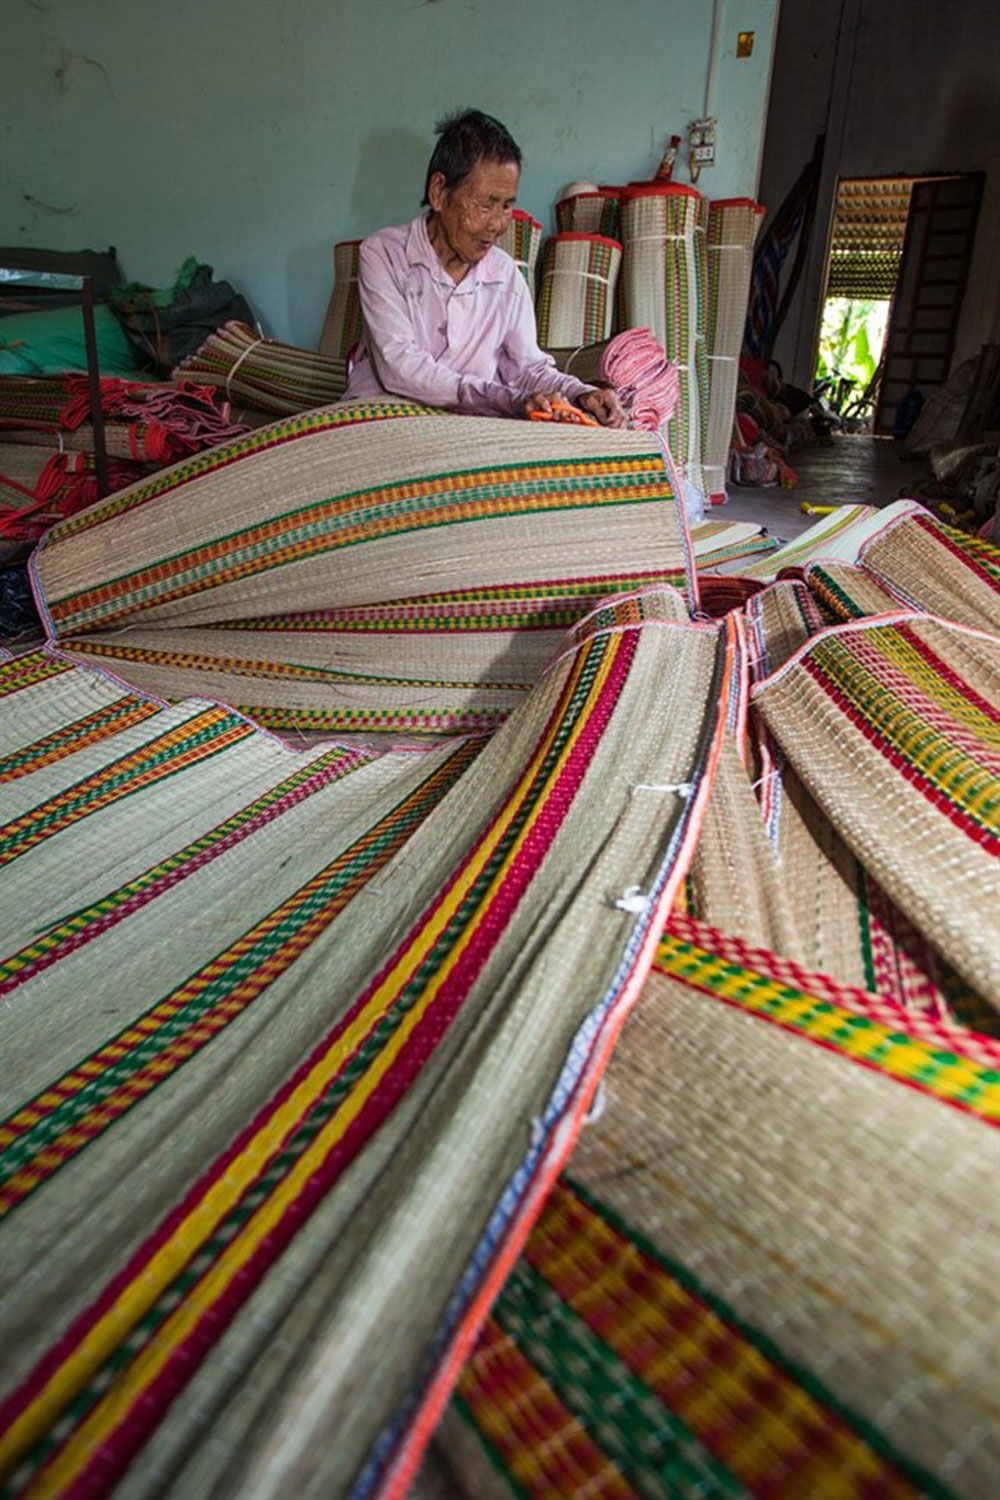 New machines, mat weaving village, labor intensive,  traditional craft, old production method,  initial investment